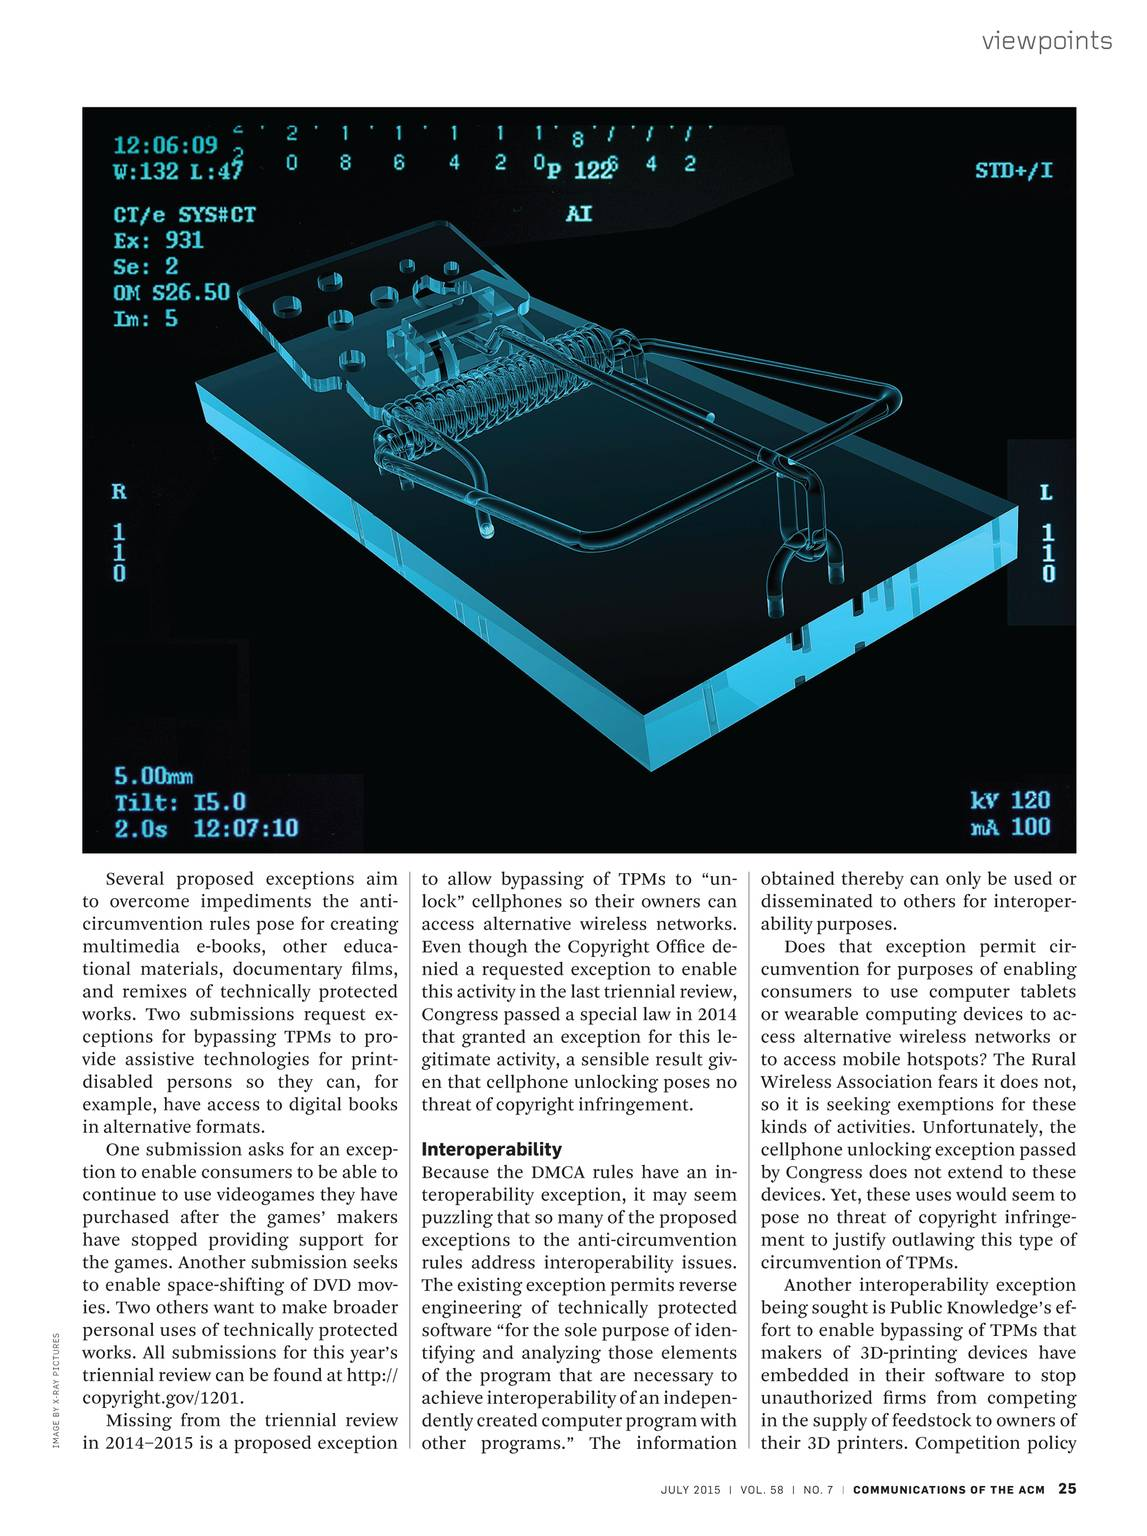 Communications of the ACM - July 2015 - page 26